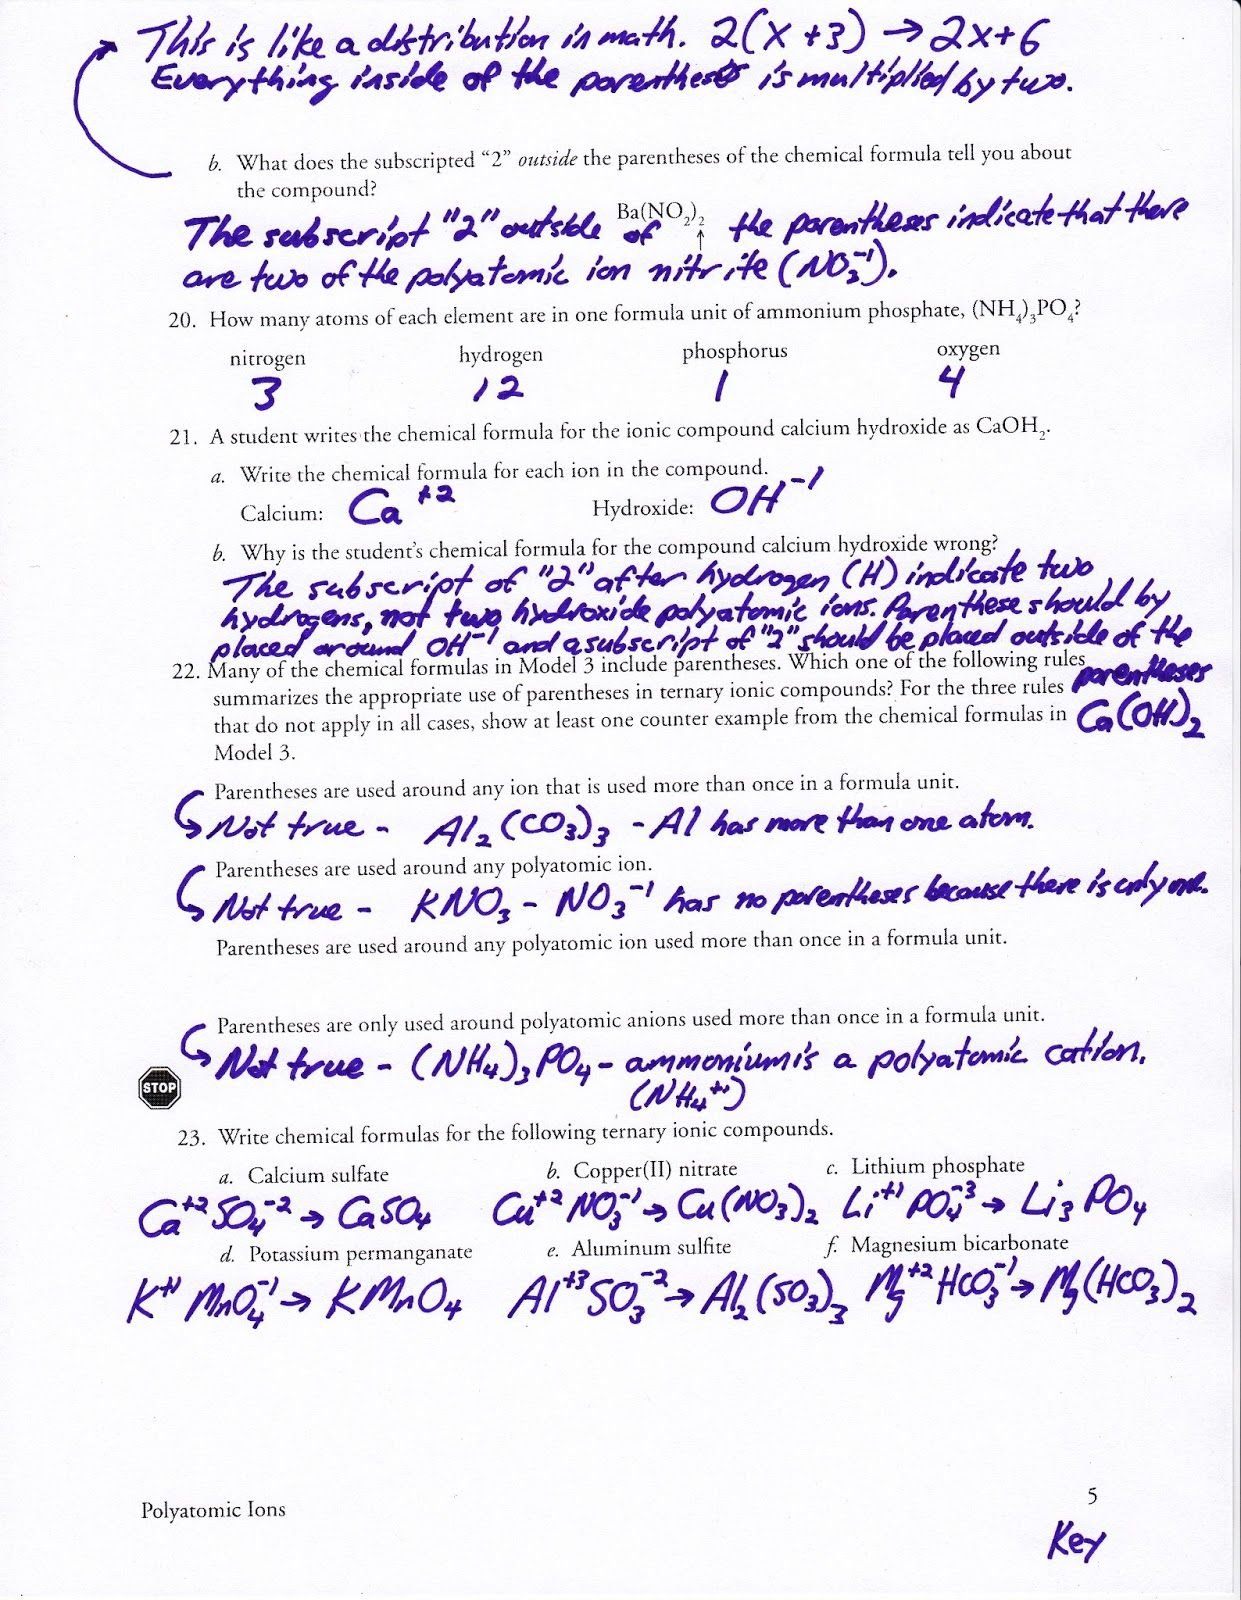 Worksheets Molarity Pogil Answer Key mr brueckner s chemistry class february things to wear polyatomic ions worksheet answer key